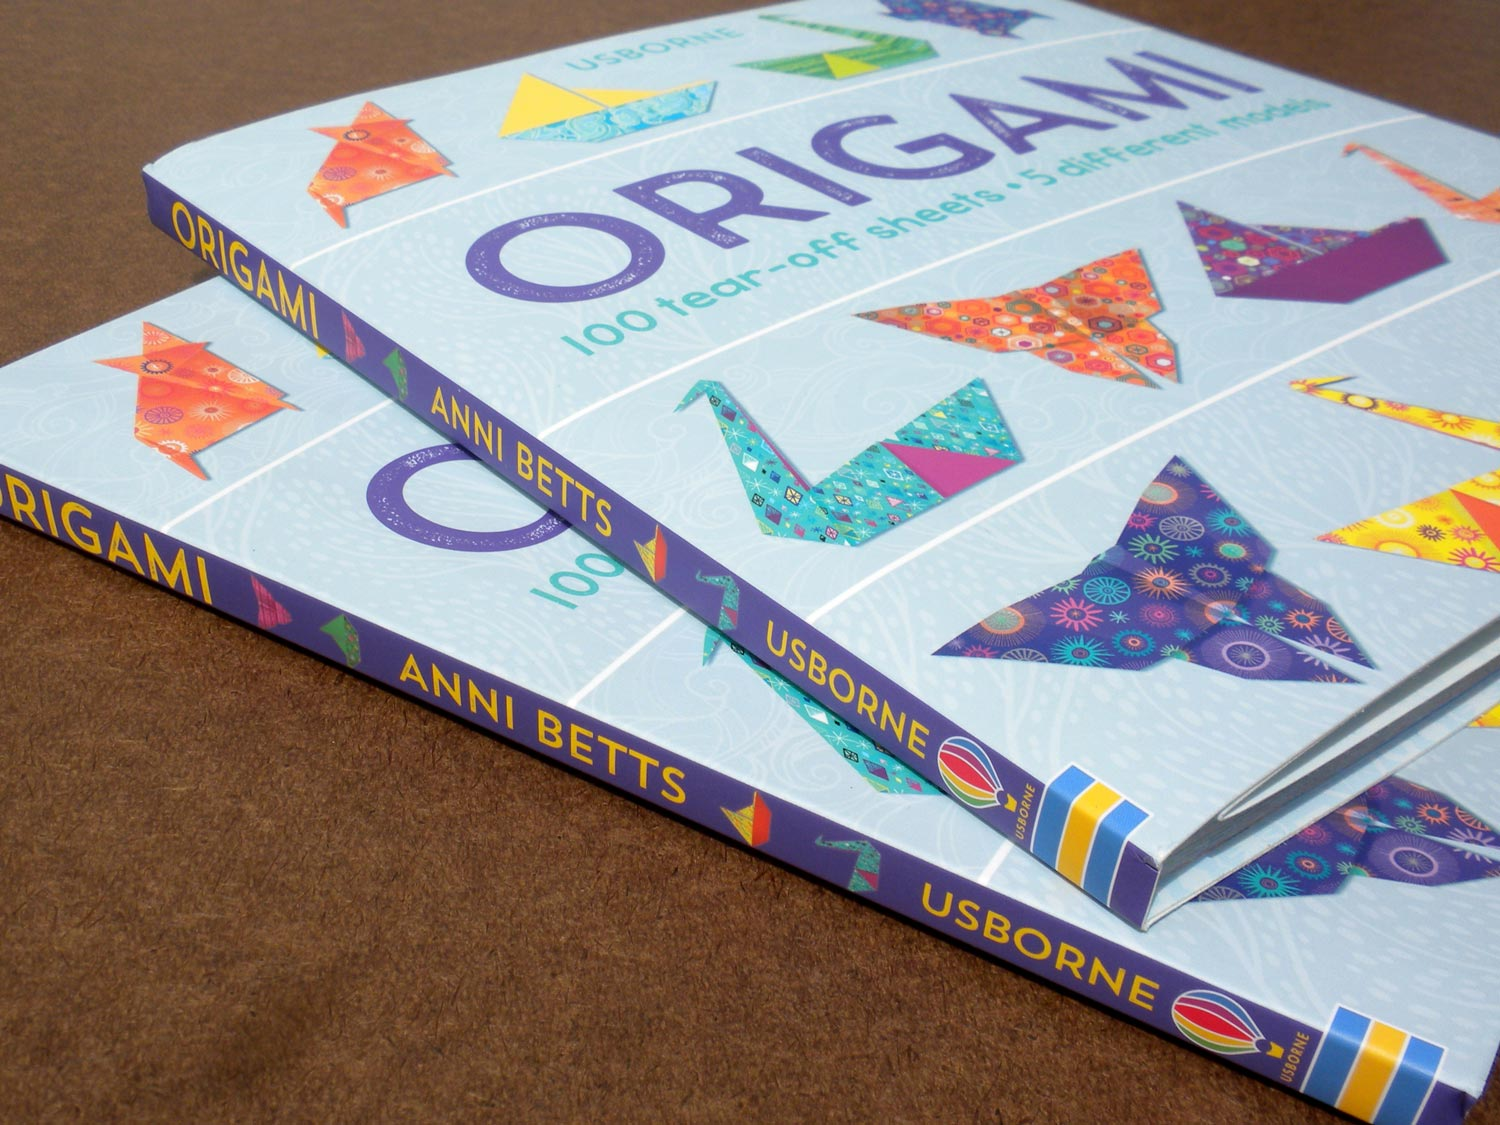 Anni_Betts_Origami_Book_Covers_2